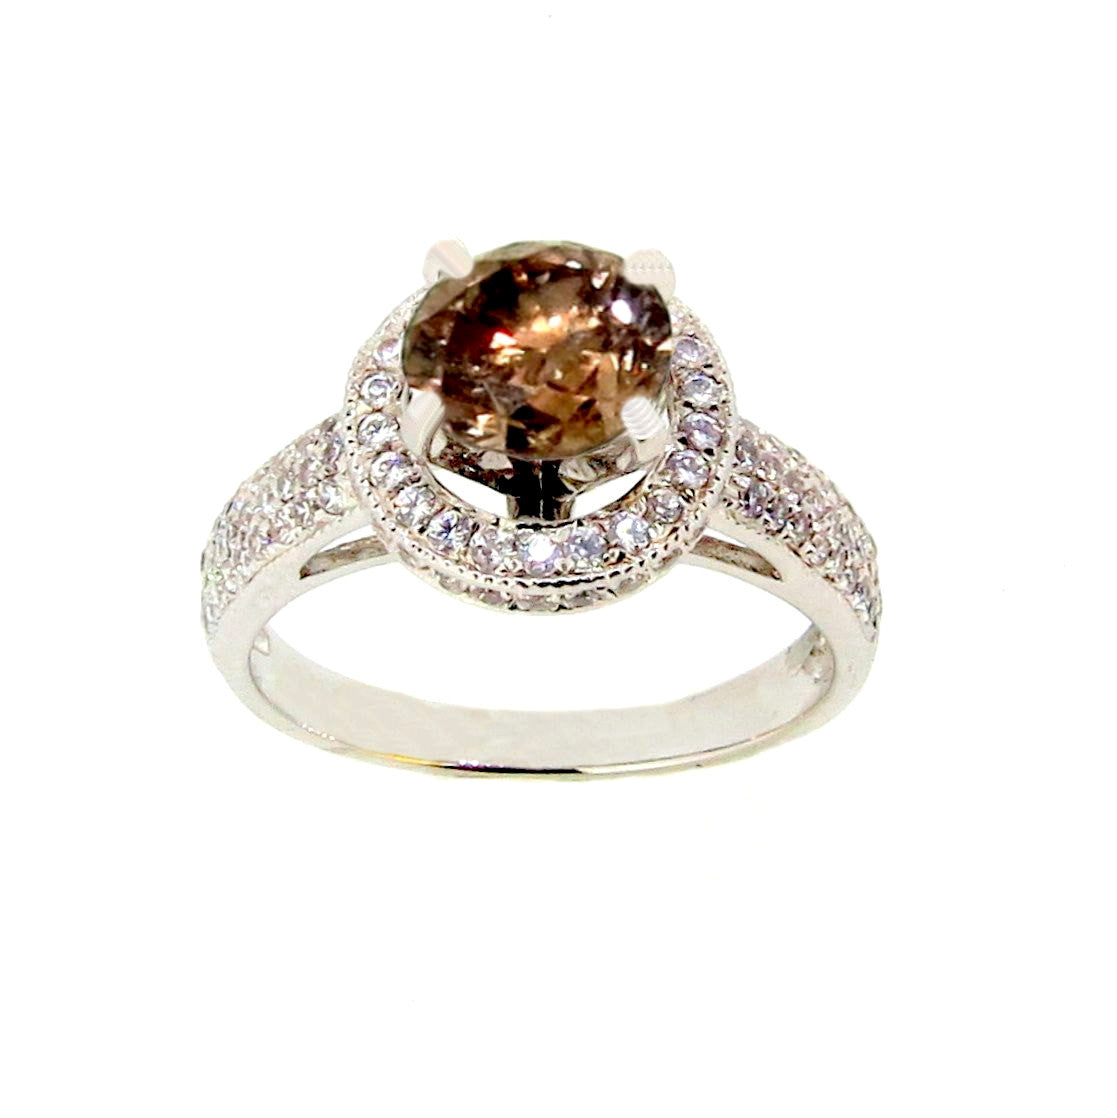 1 Carat Chocolate Brown Diamond, Floating Halo, Engagement Ring, Anniversary Ring - BD85030